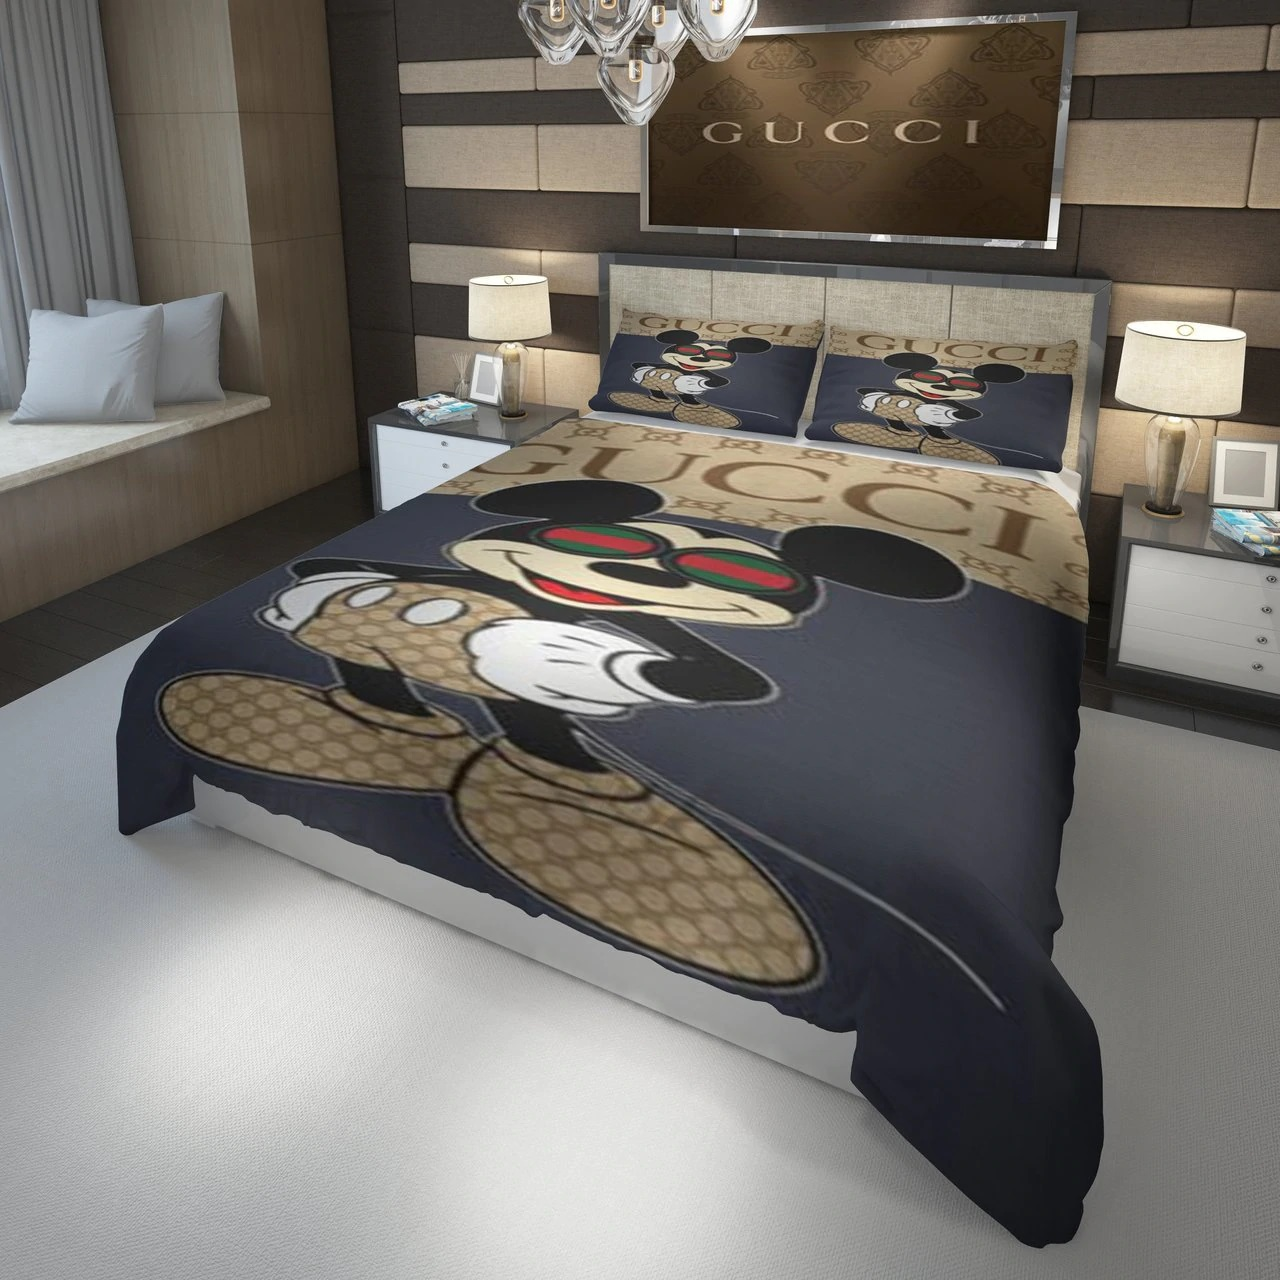 gucci mickey mouse with glasses bedding set 2